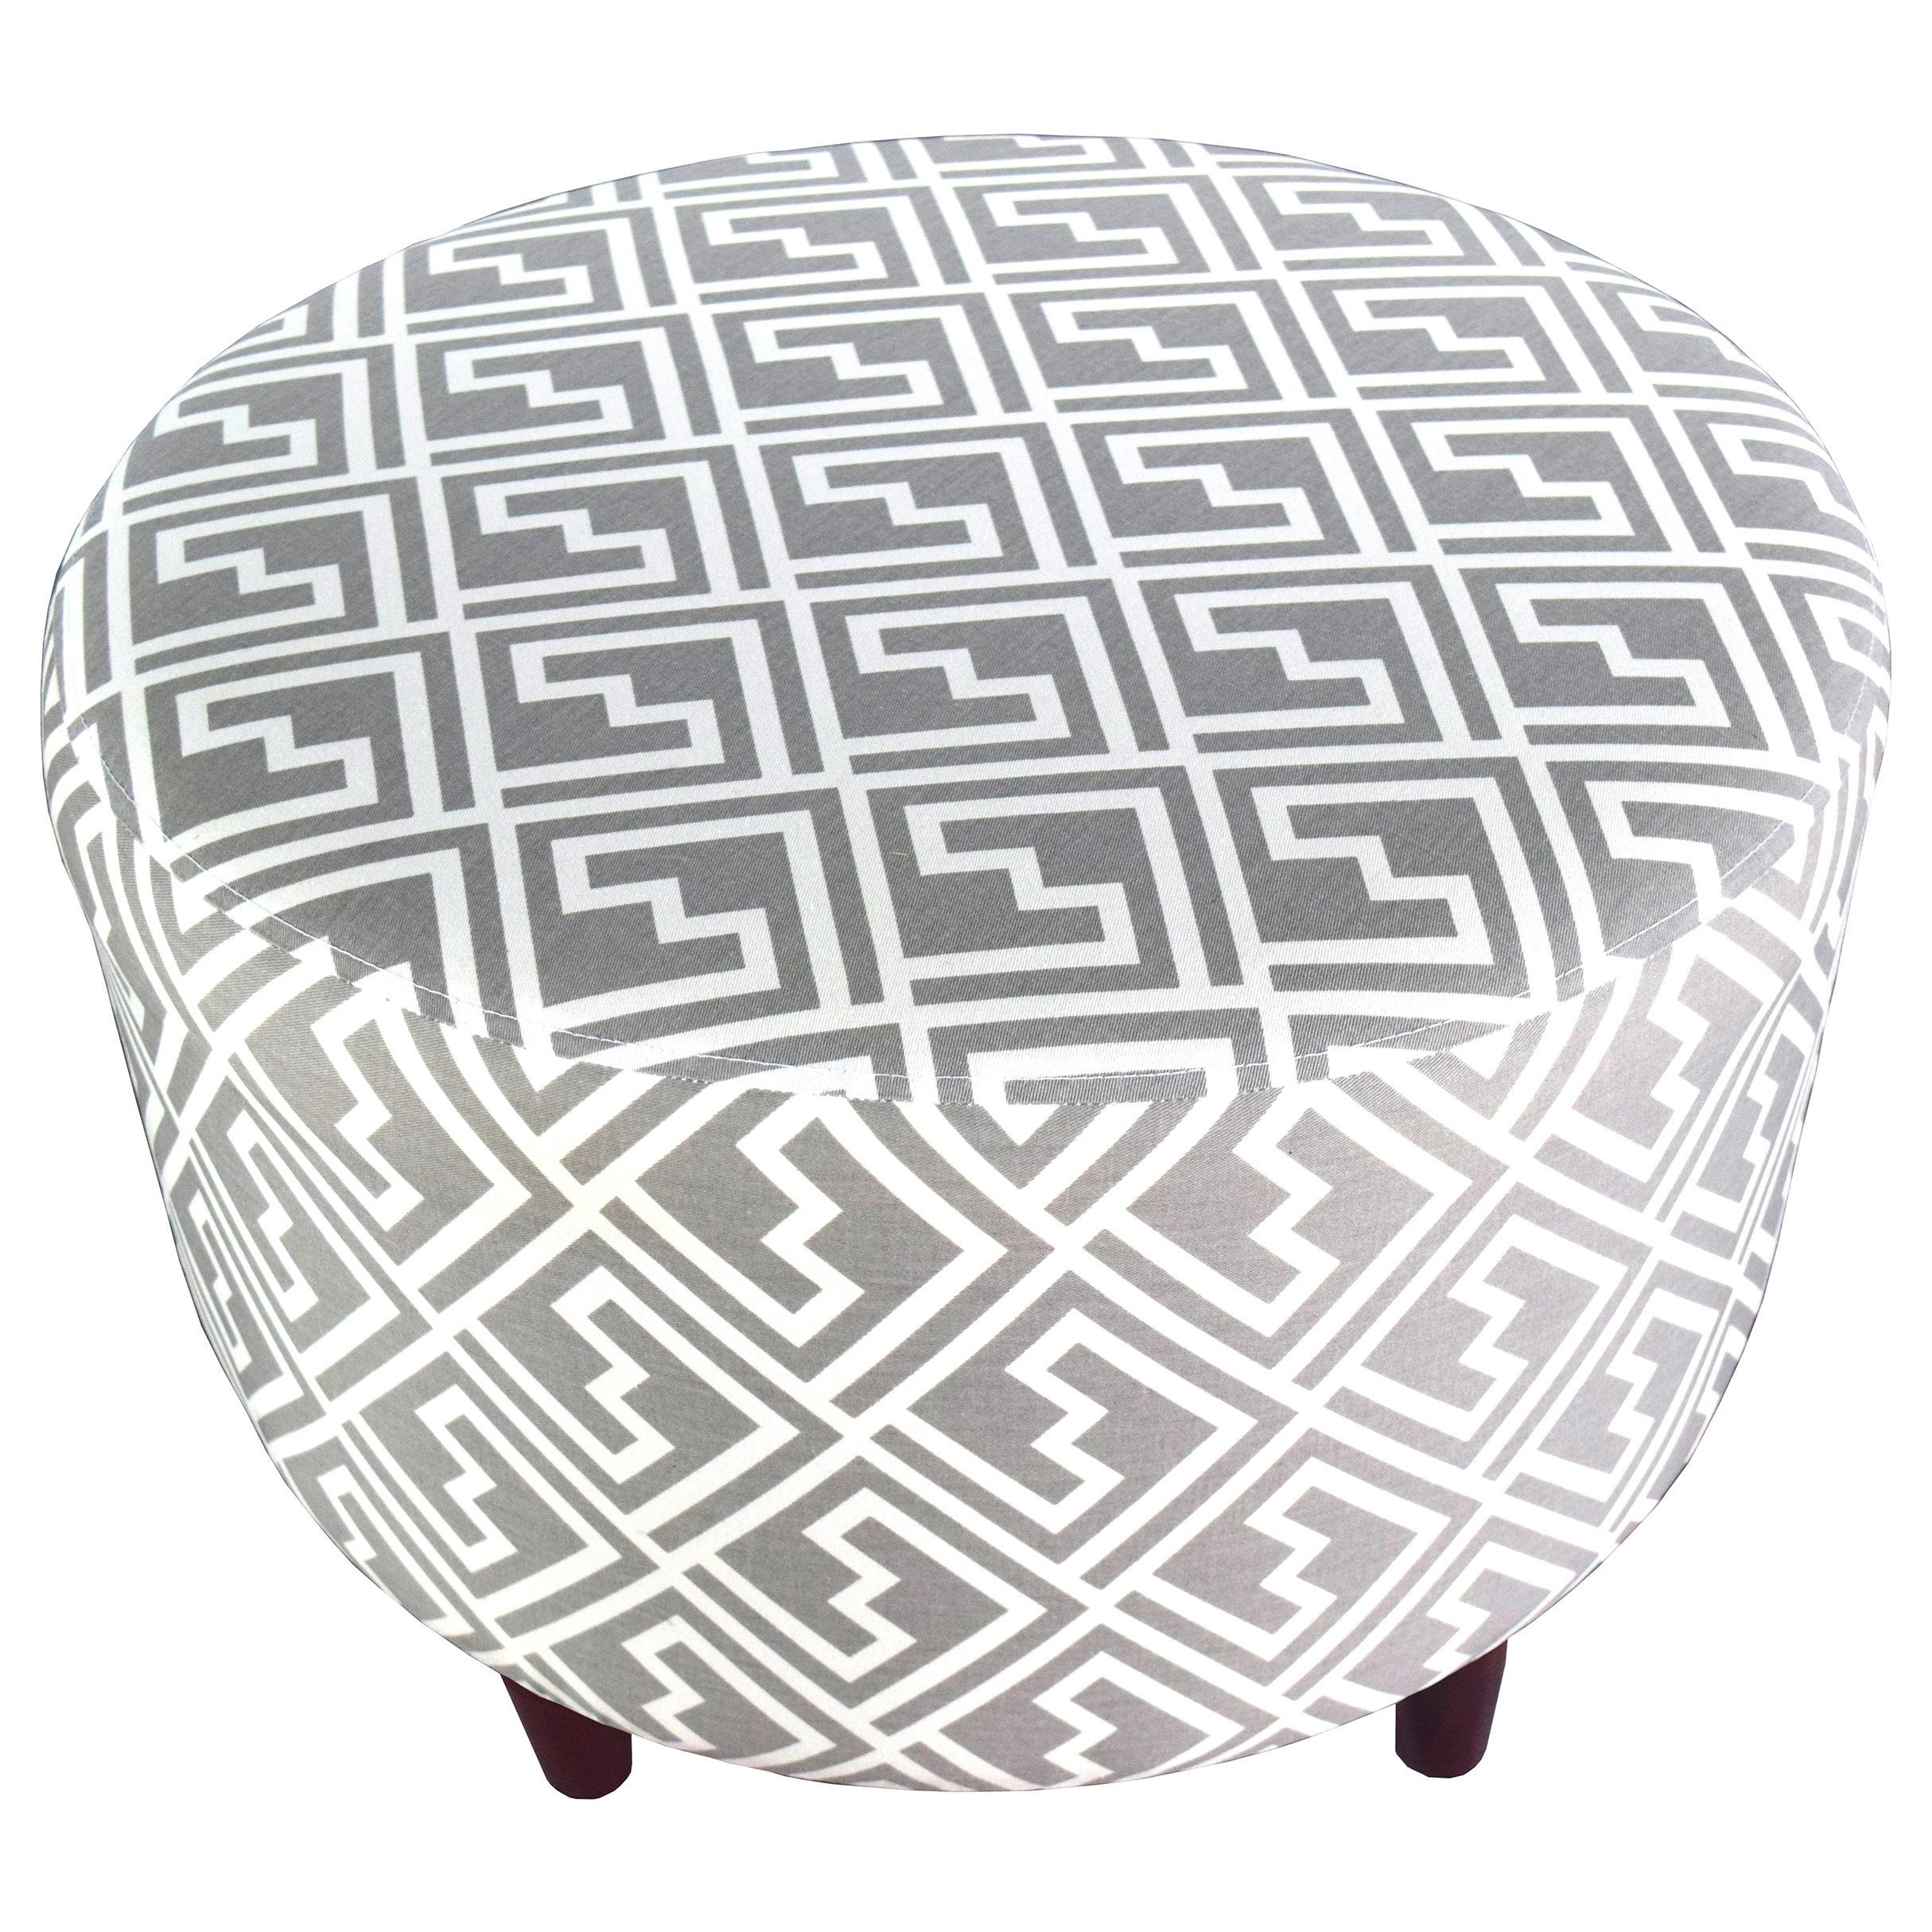 MJL Furniture Designs Sophia Collection Fabric Upholstered Round Footrest Ottoman with Round Espresso Finished Legs, Shakes Series, Storm